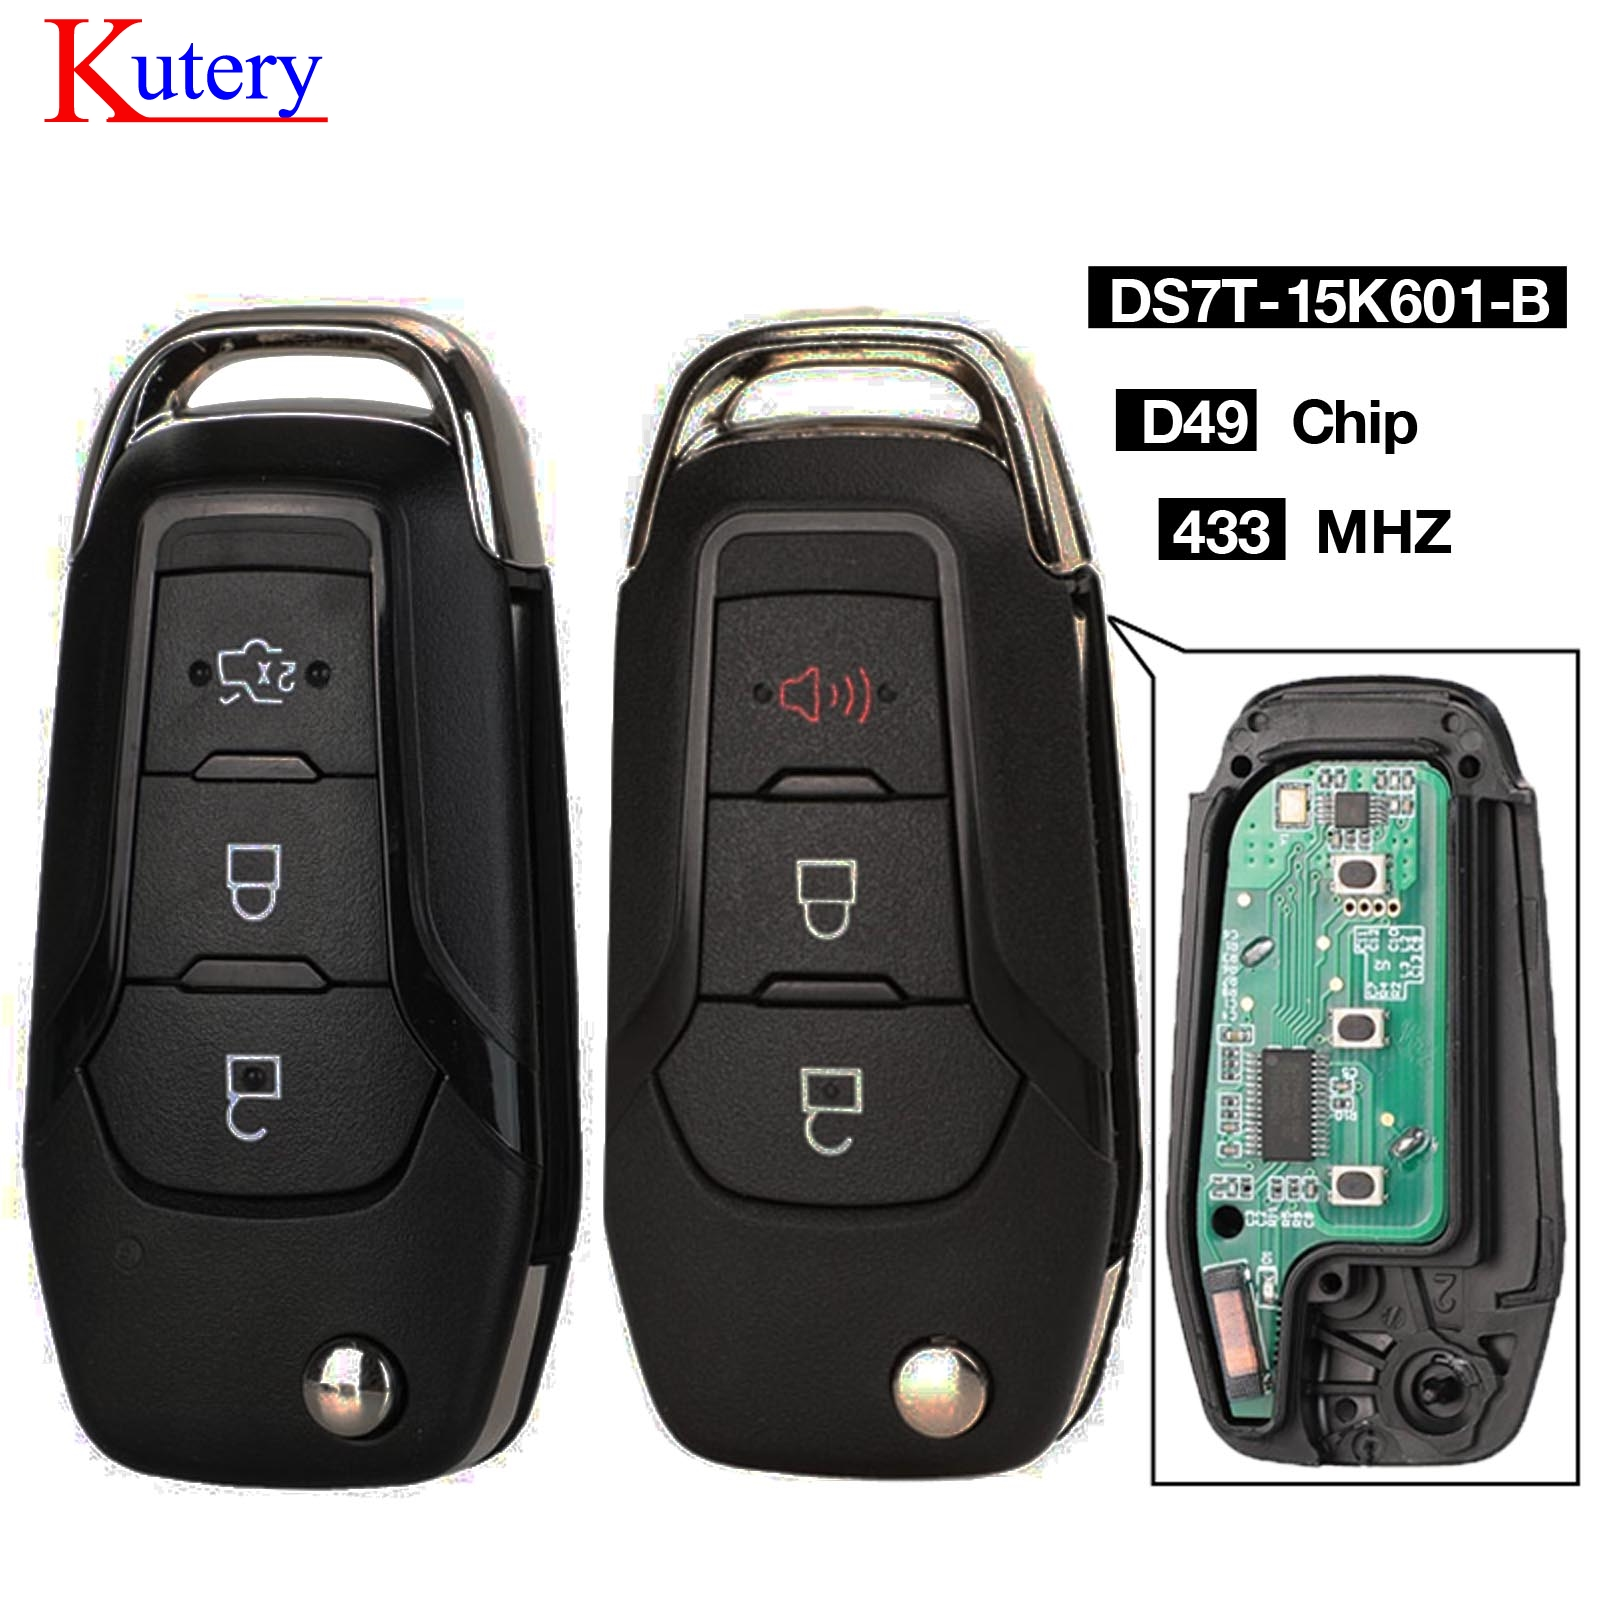 kutery  Flip Remote Key Fob 3 Button 433MHZ ID49 Chip For Ford S-MAX GALAXY MONDEO Mk2 Mk7 Explorer Ranger DS7T-15K601-B